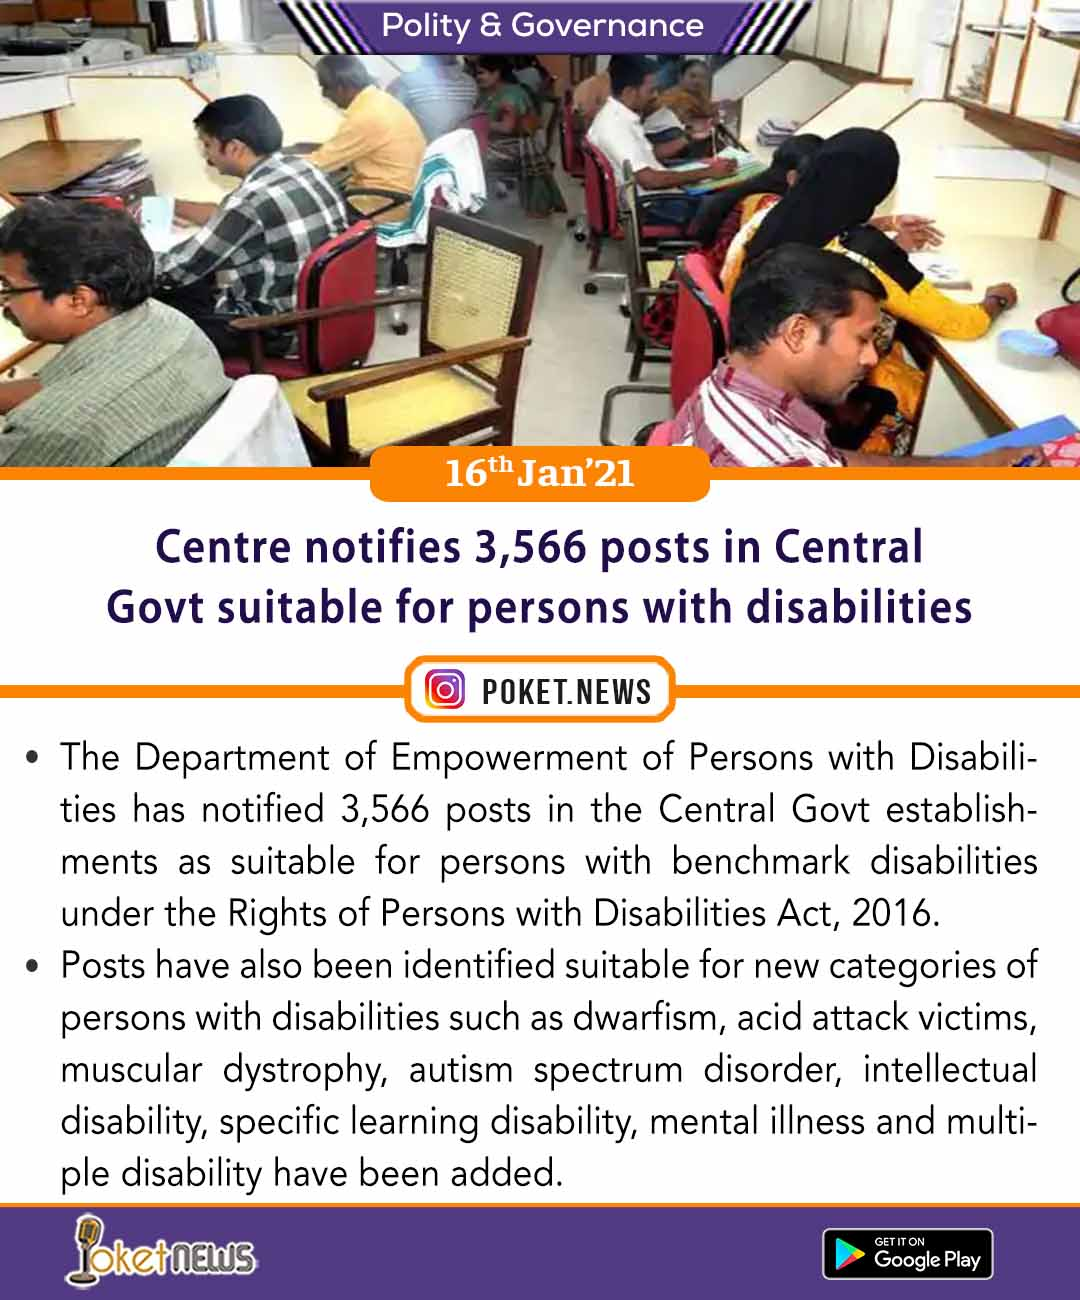 Centre notifies 3,566 posts in Central Govt suitable for persons with disabilities